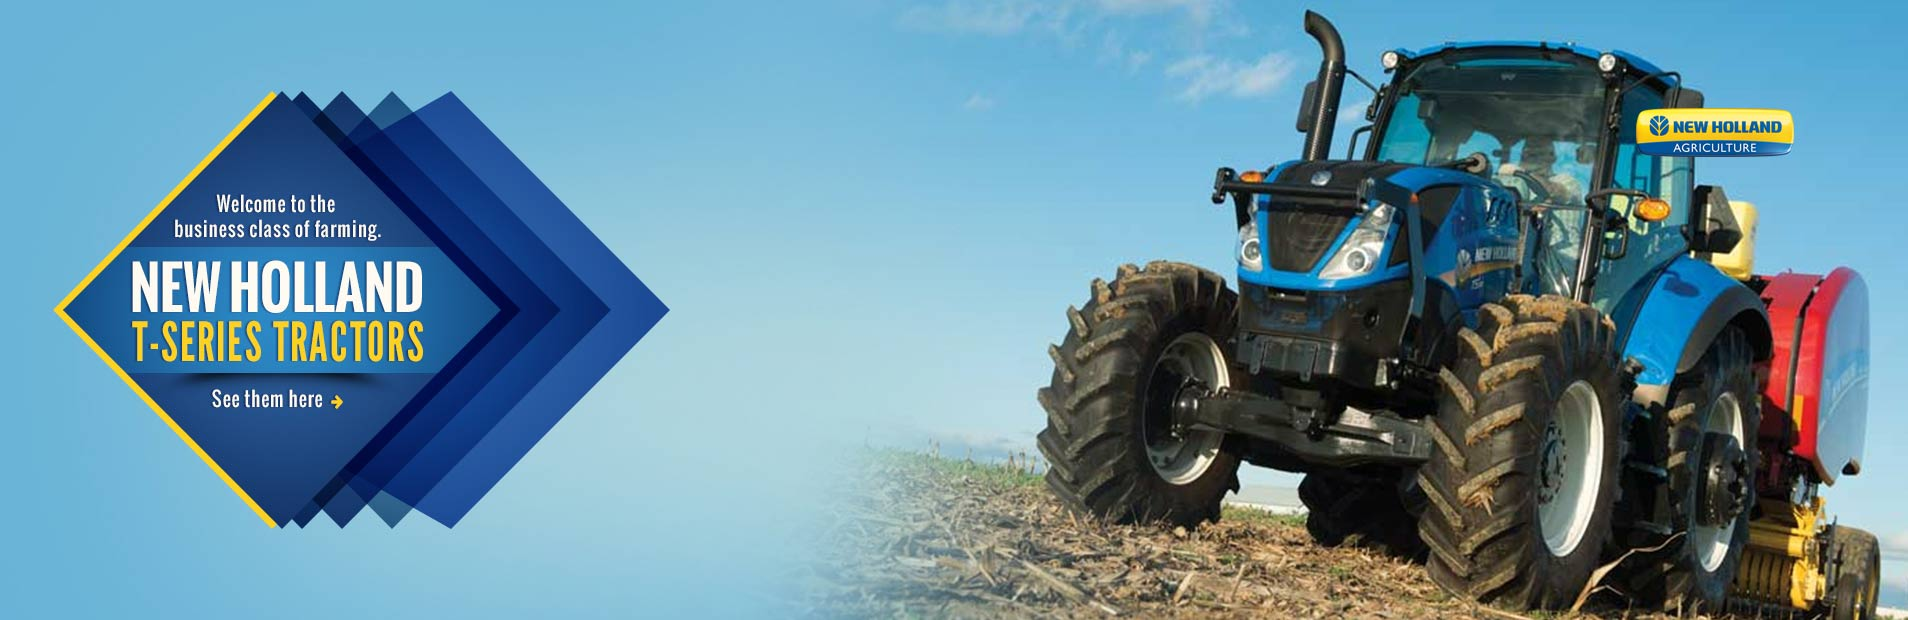 Click here to view our selection of New Holland T-series tractors!